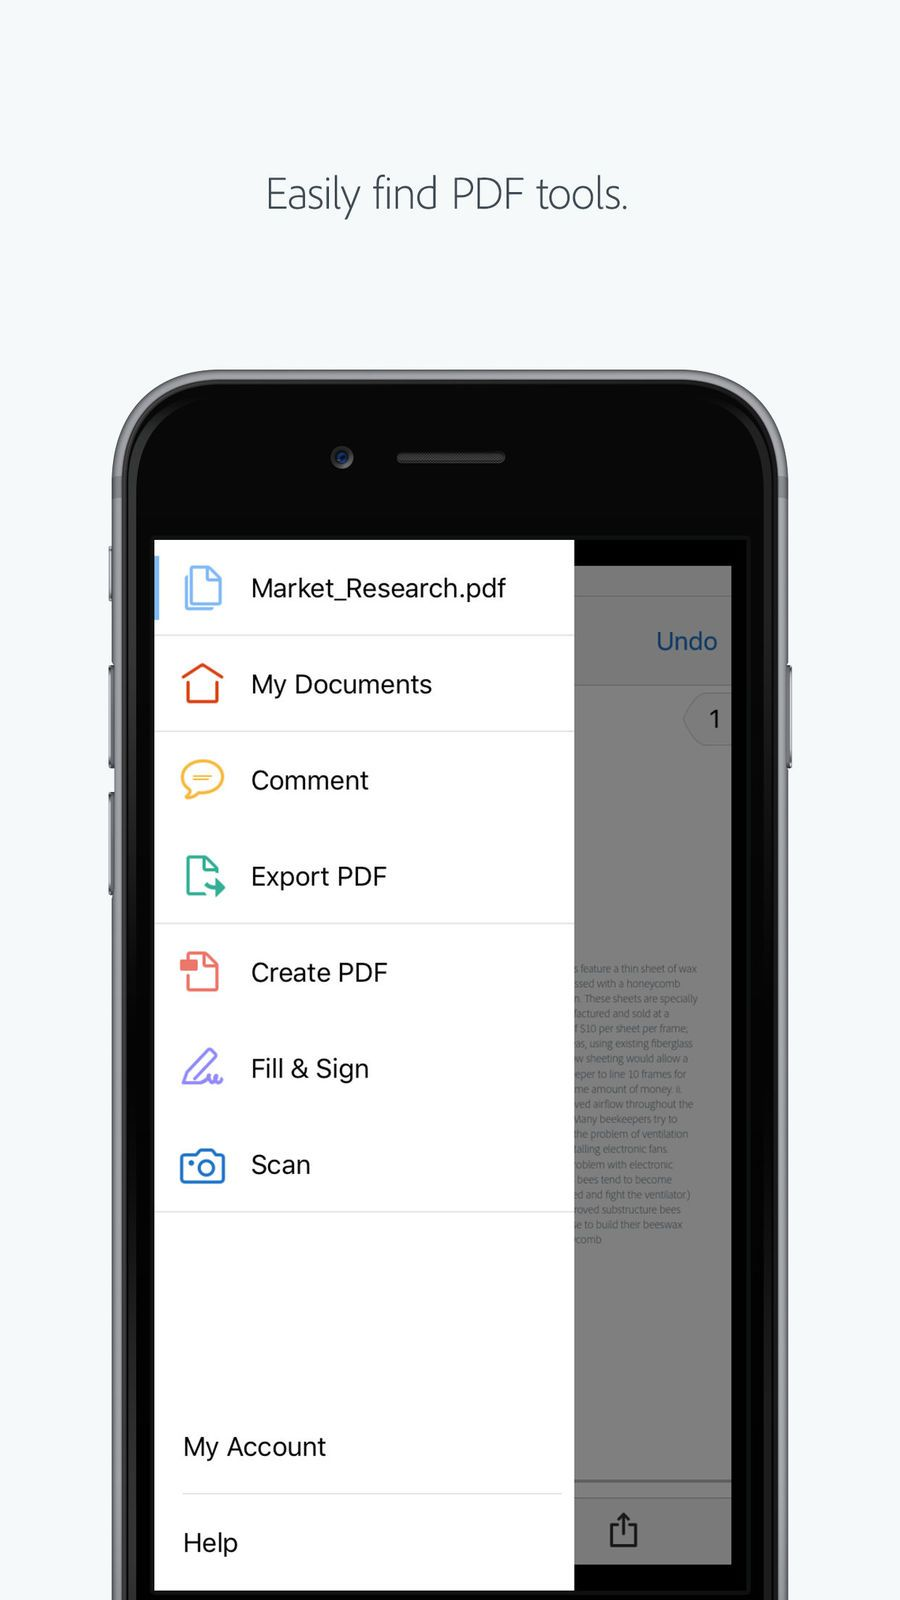 Adobe Acrobat Reader #ios#Productivity#app#apps | cool